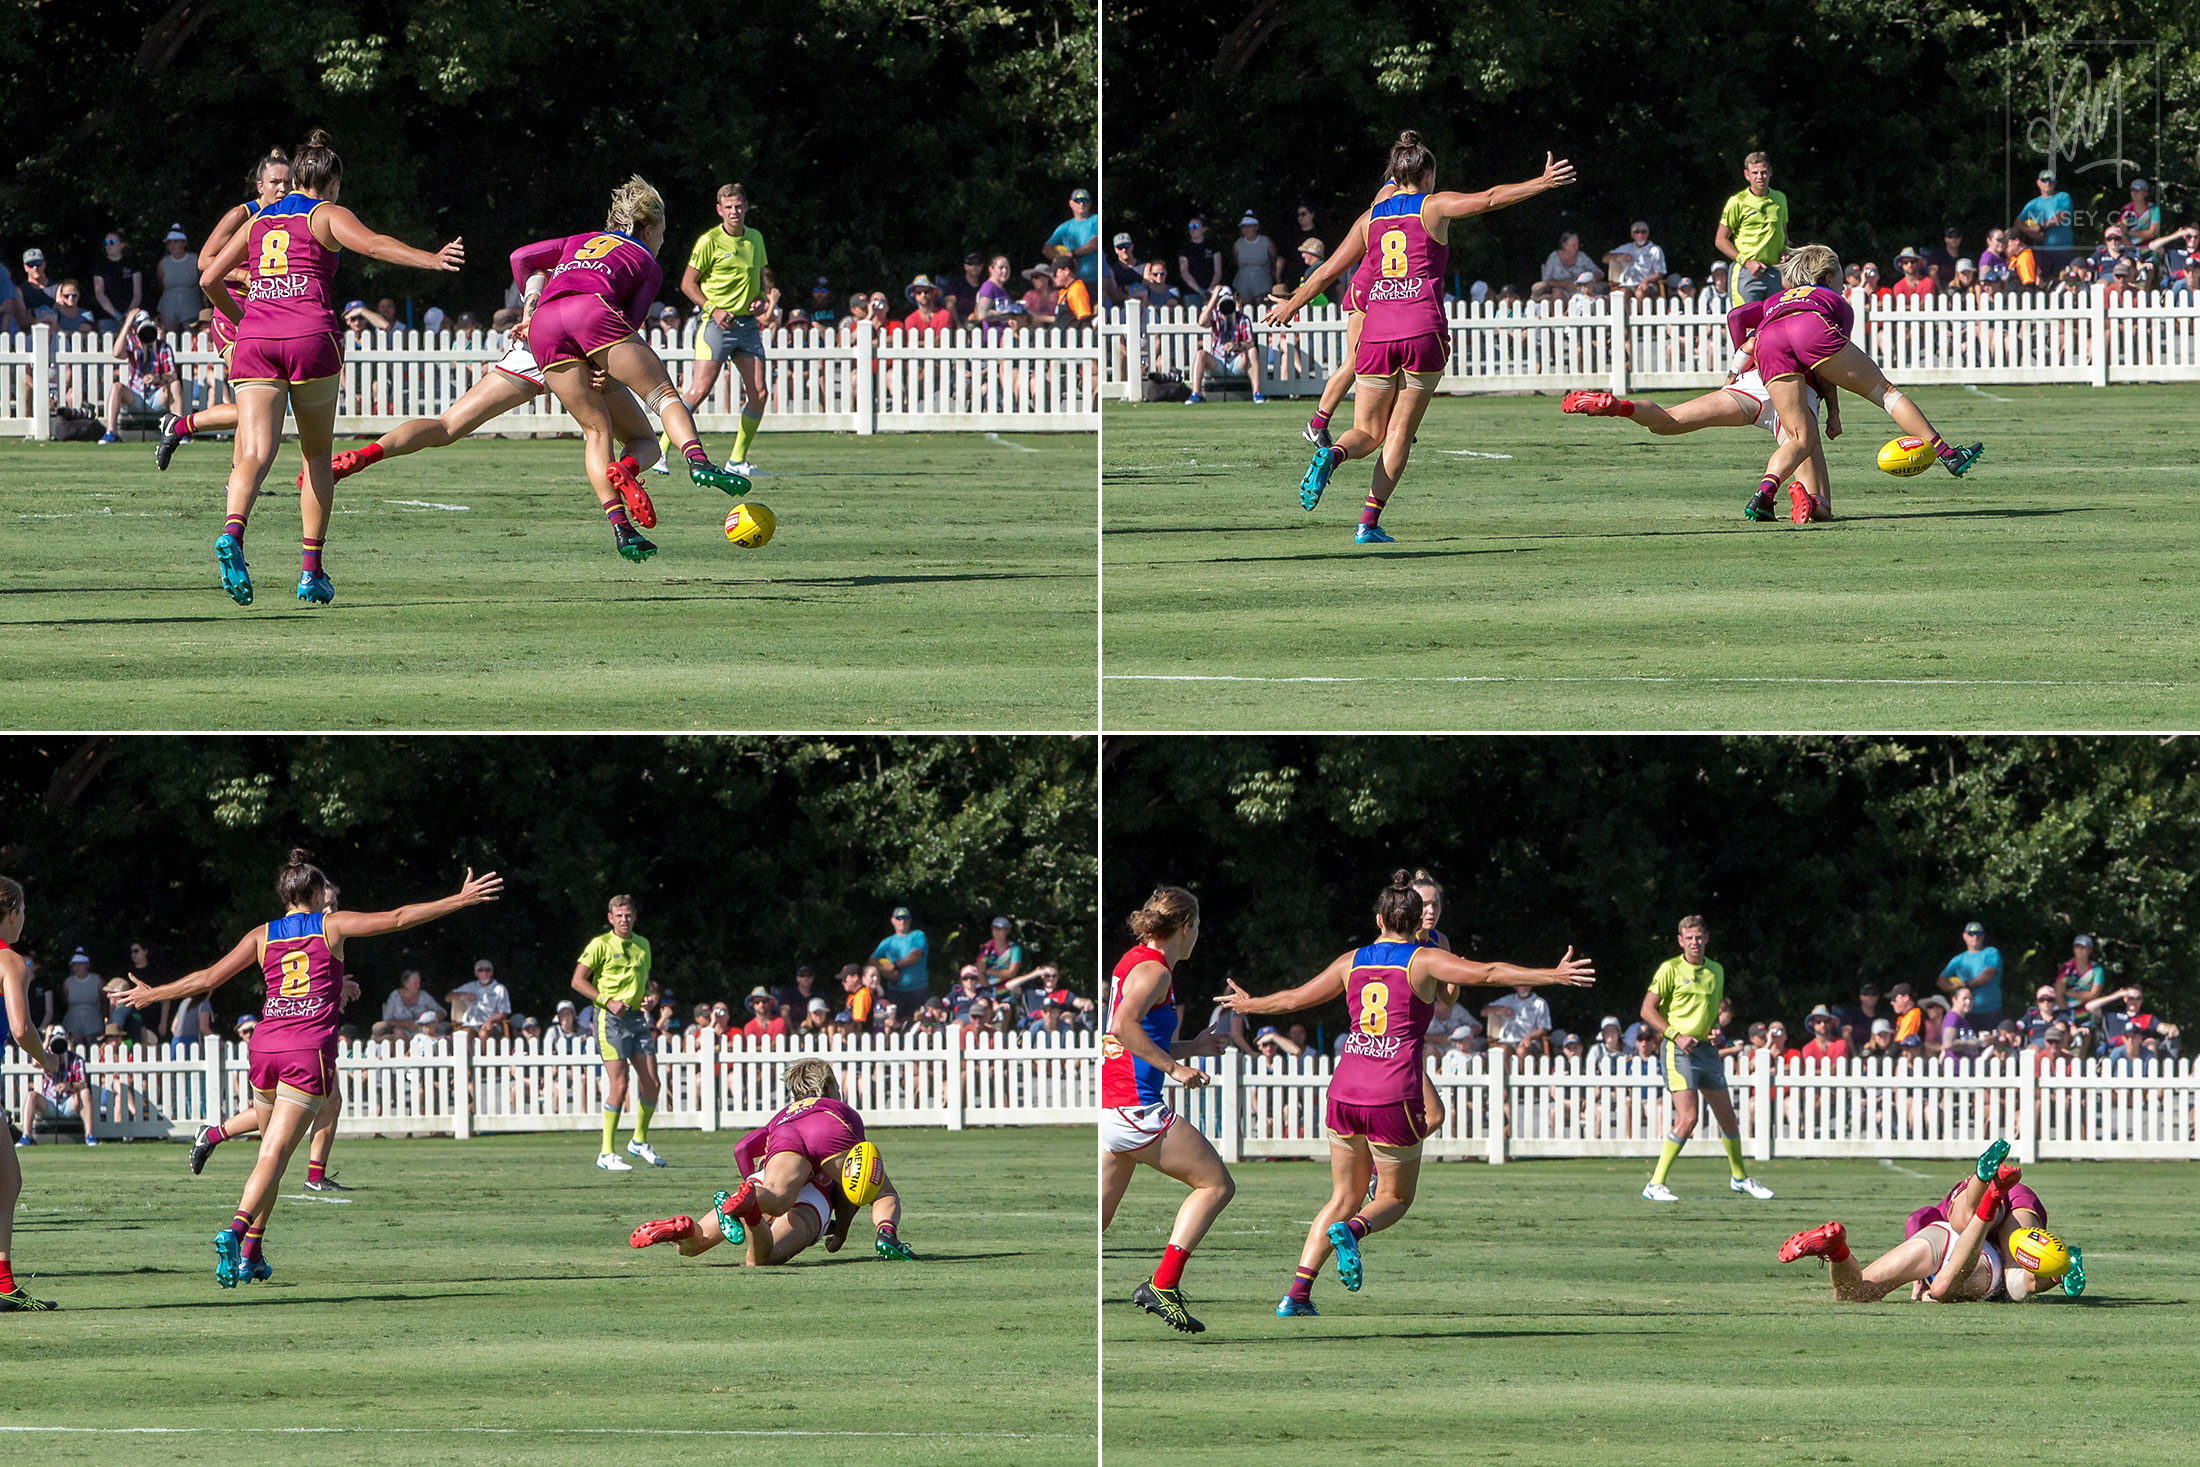 What it feels like to be chased down and buried in the turf by speedster Kate McCarthy